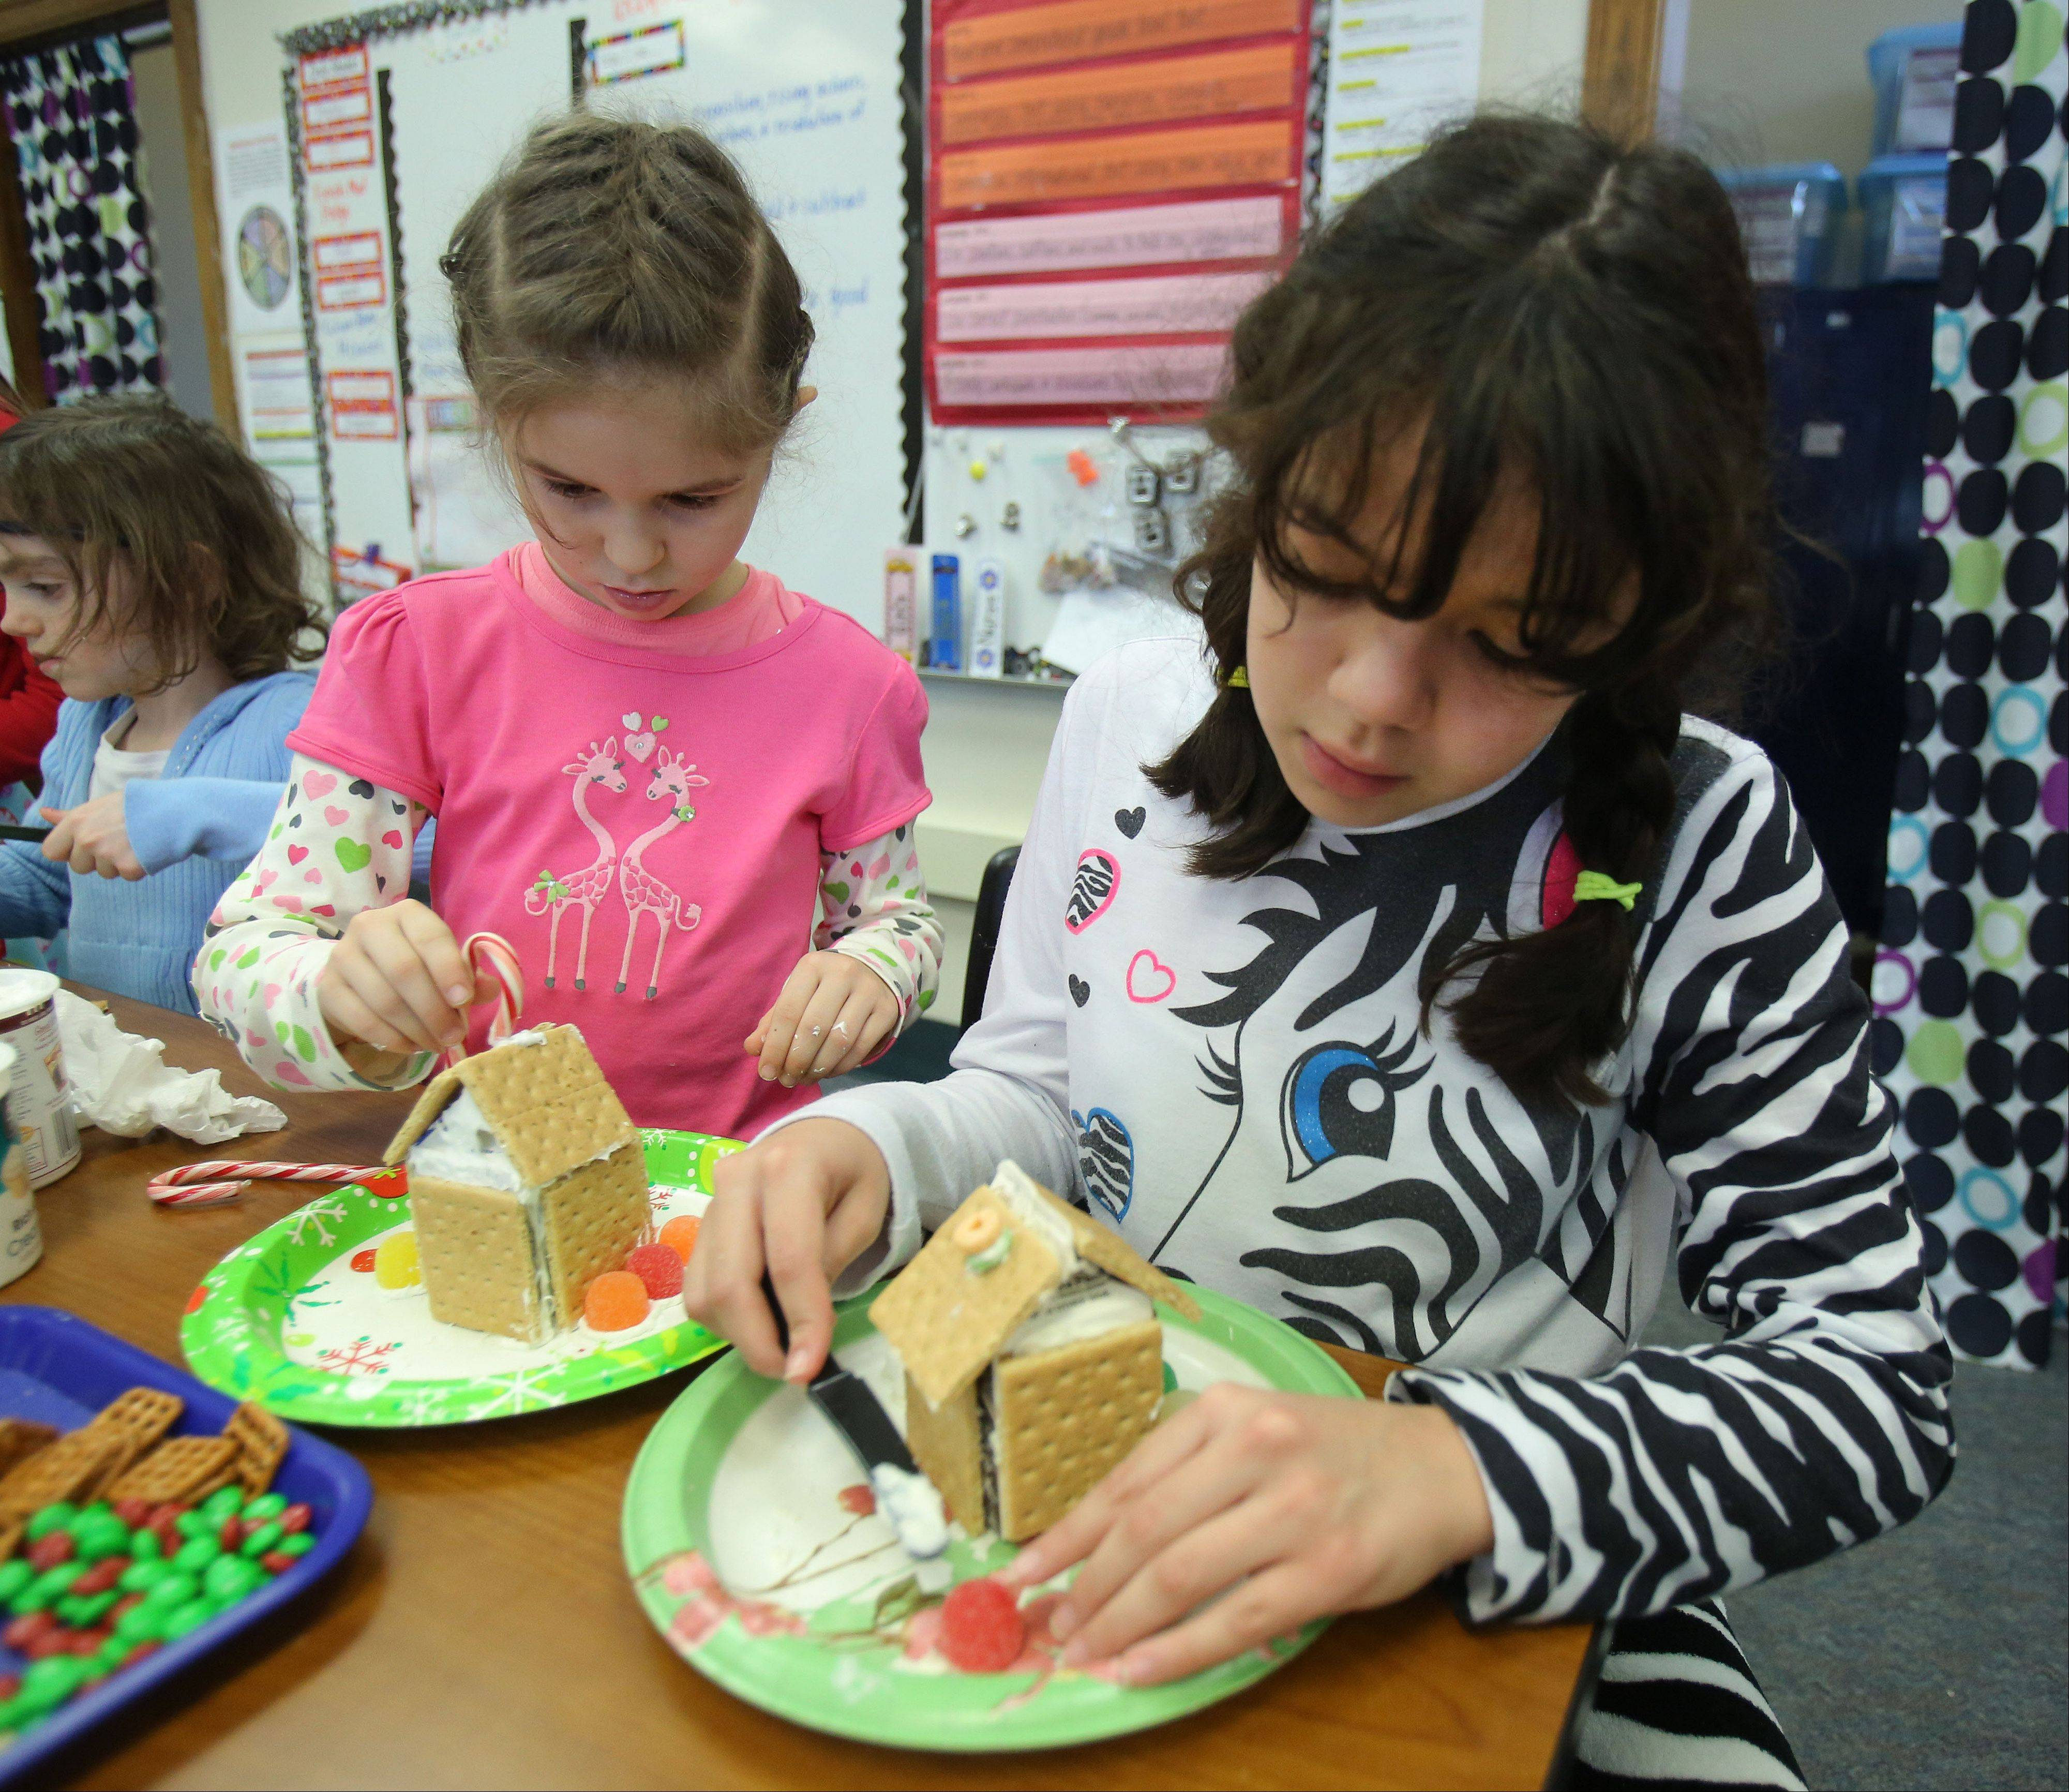 First-grader Emily Psyhogios, left, and her fifth grade book buddy, Payton Rodriguez, build gingerbread houses at Rockland Elementary School in Libertyville.